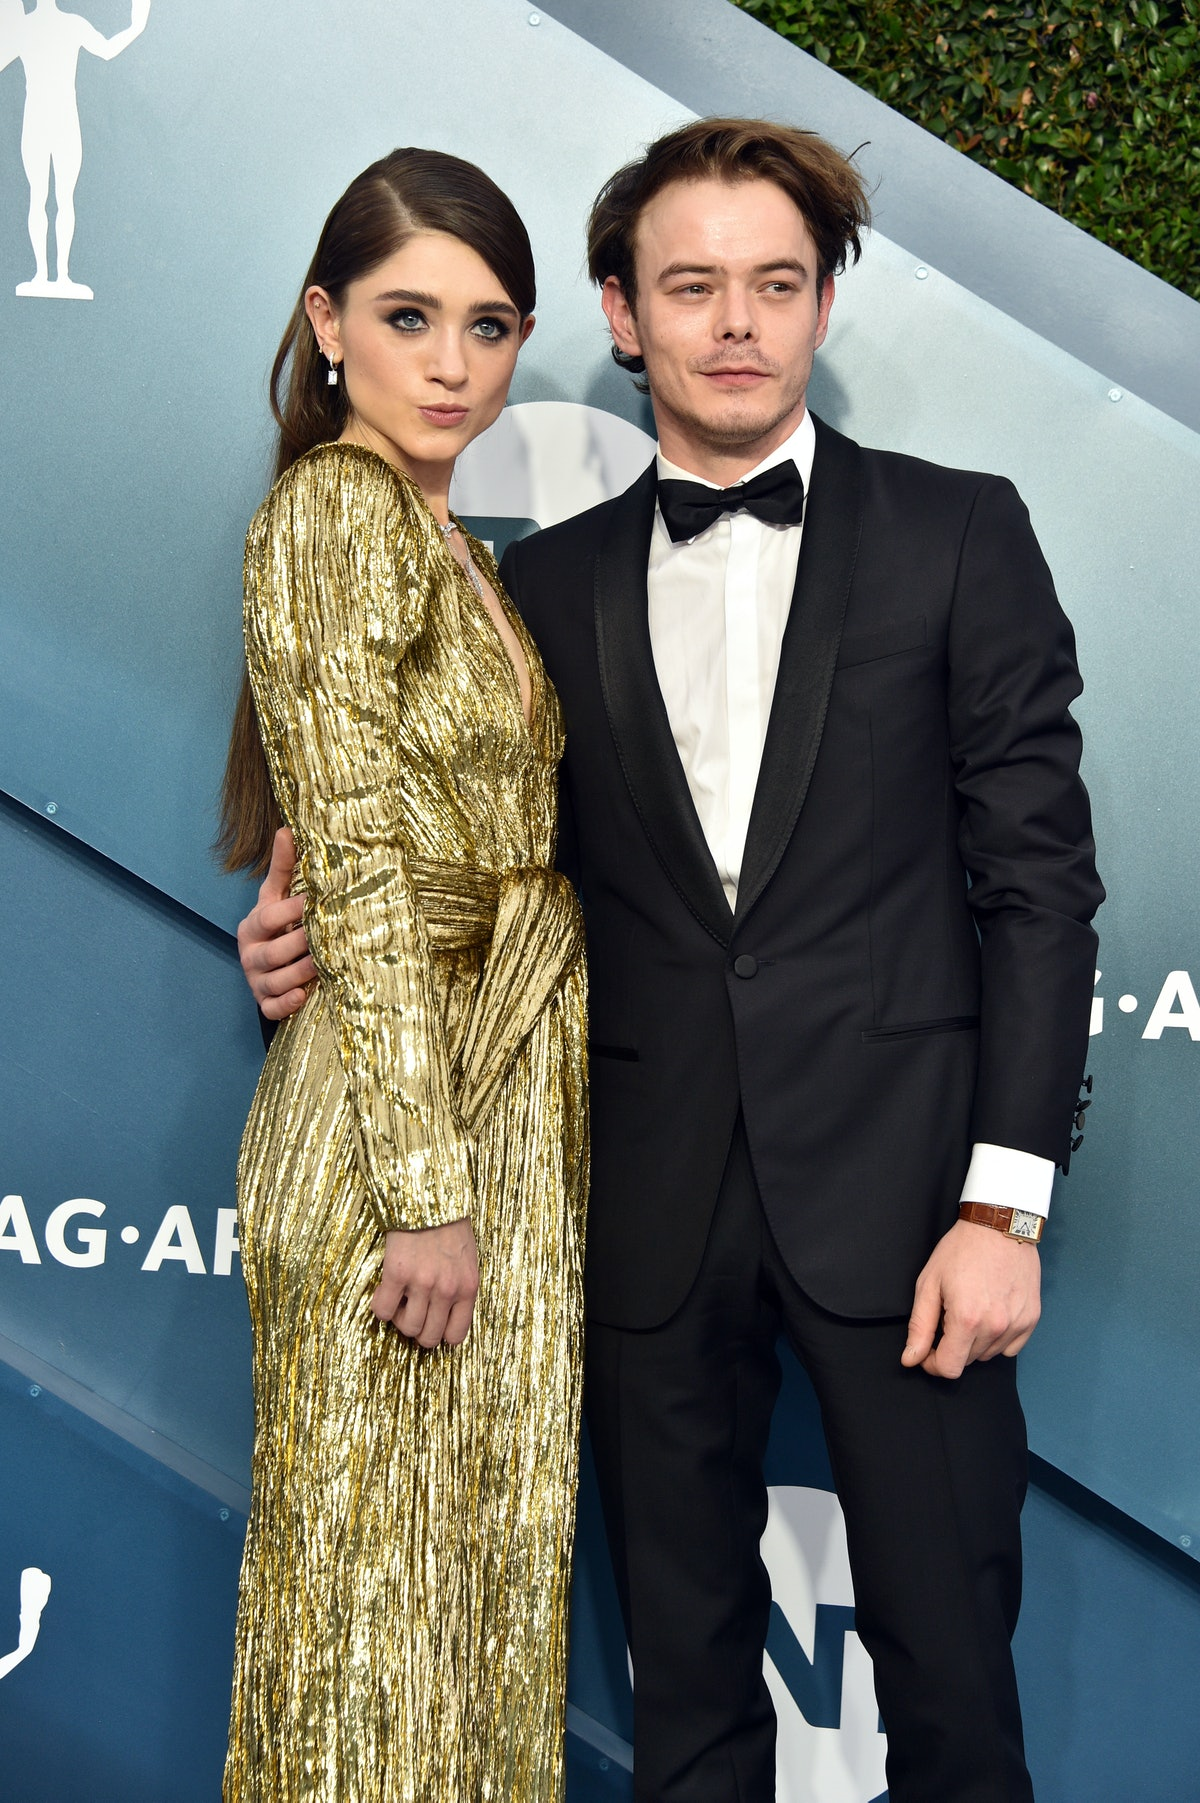 LOS ANGELES, CALIFORNIA - JANUARY 19: (L-R) Natalia Dyer and Charlie Heaton attend the 26th Annual S...